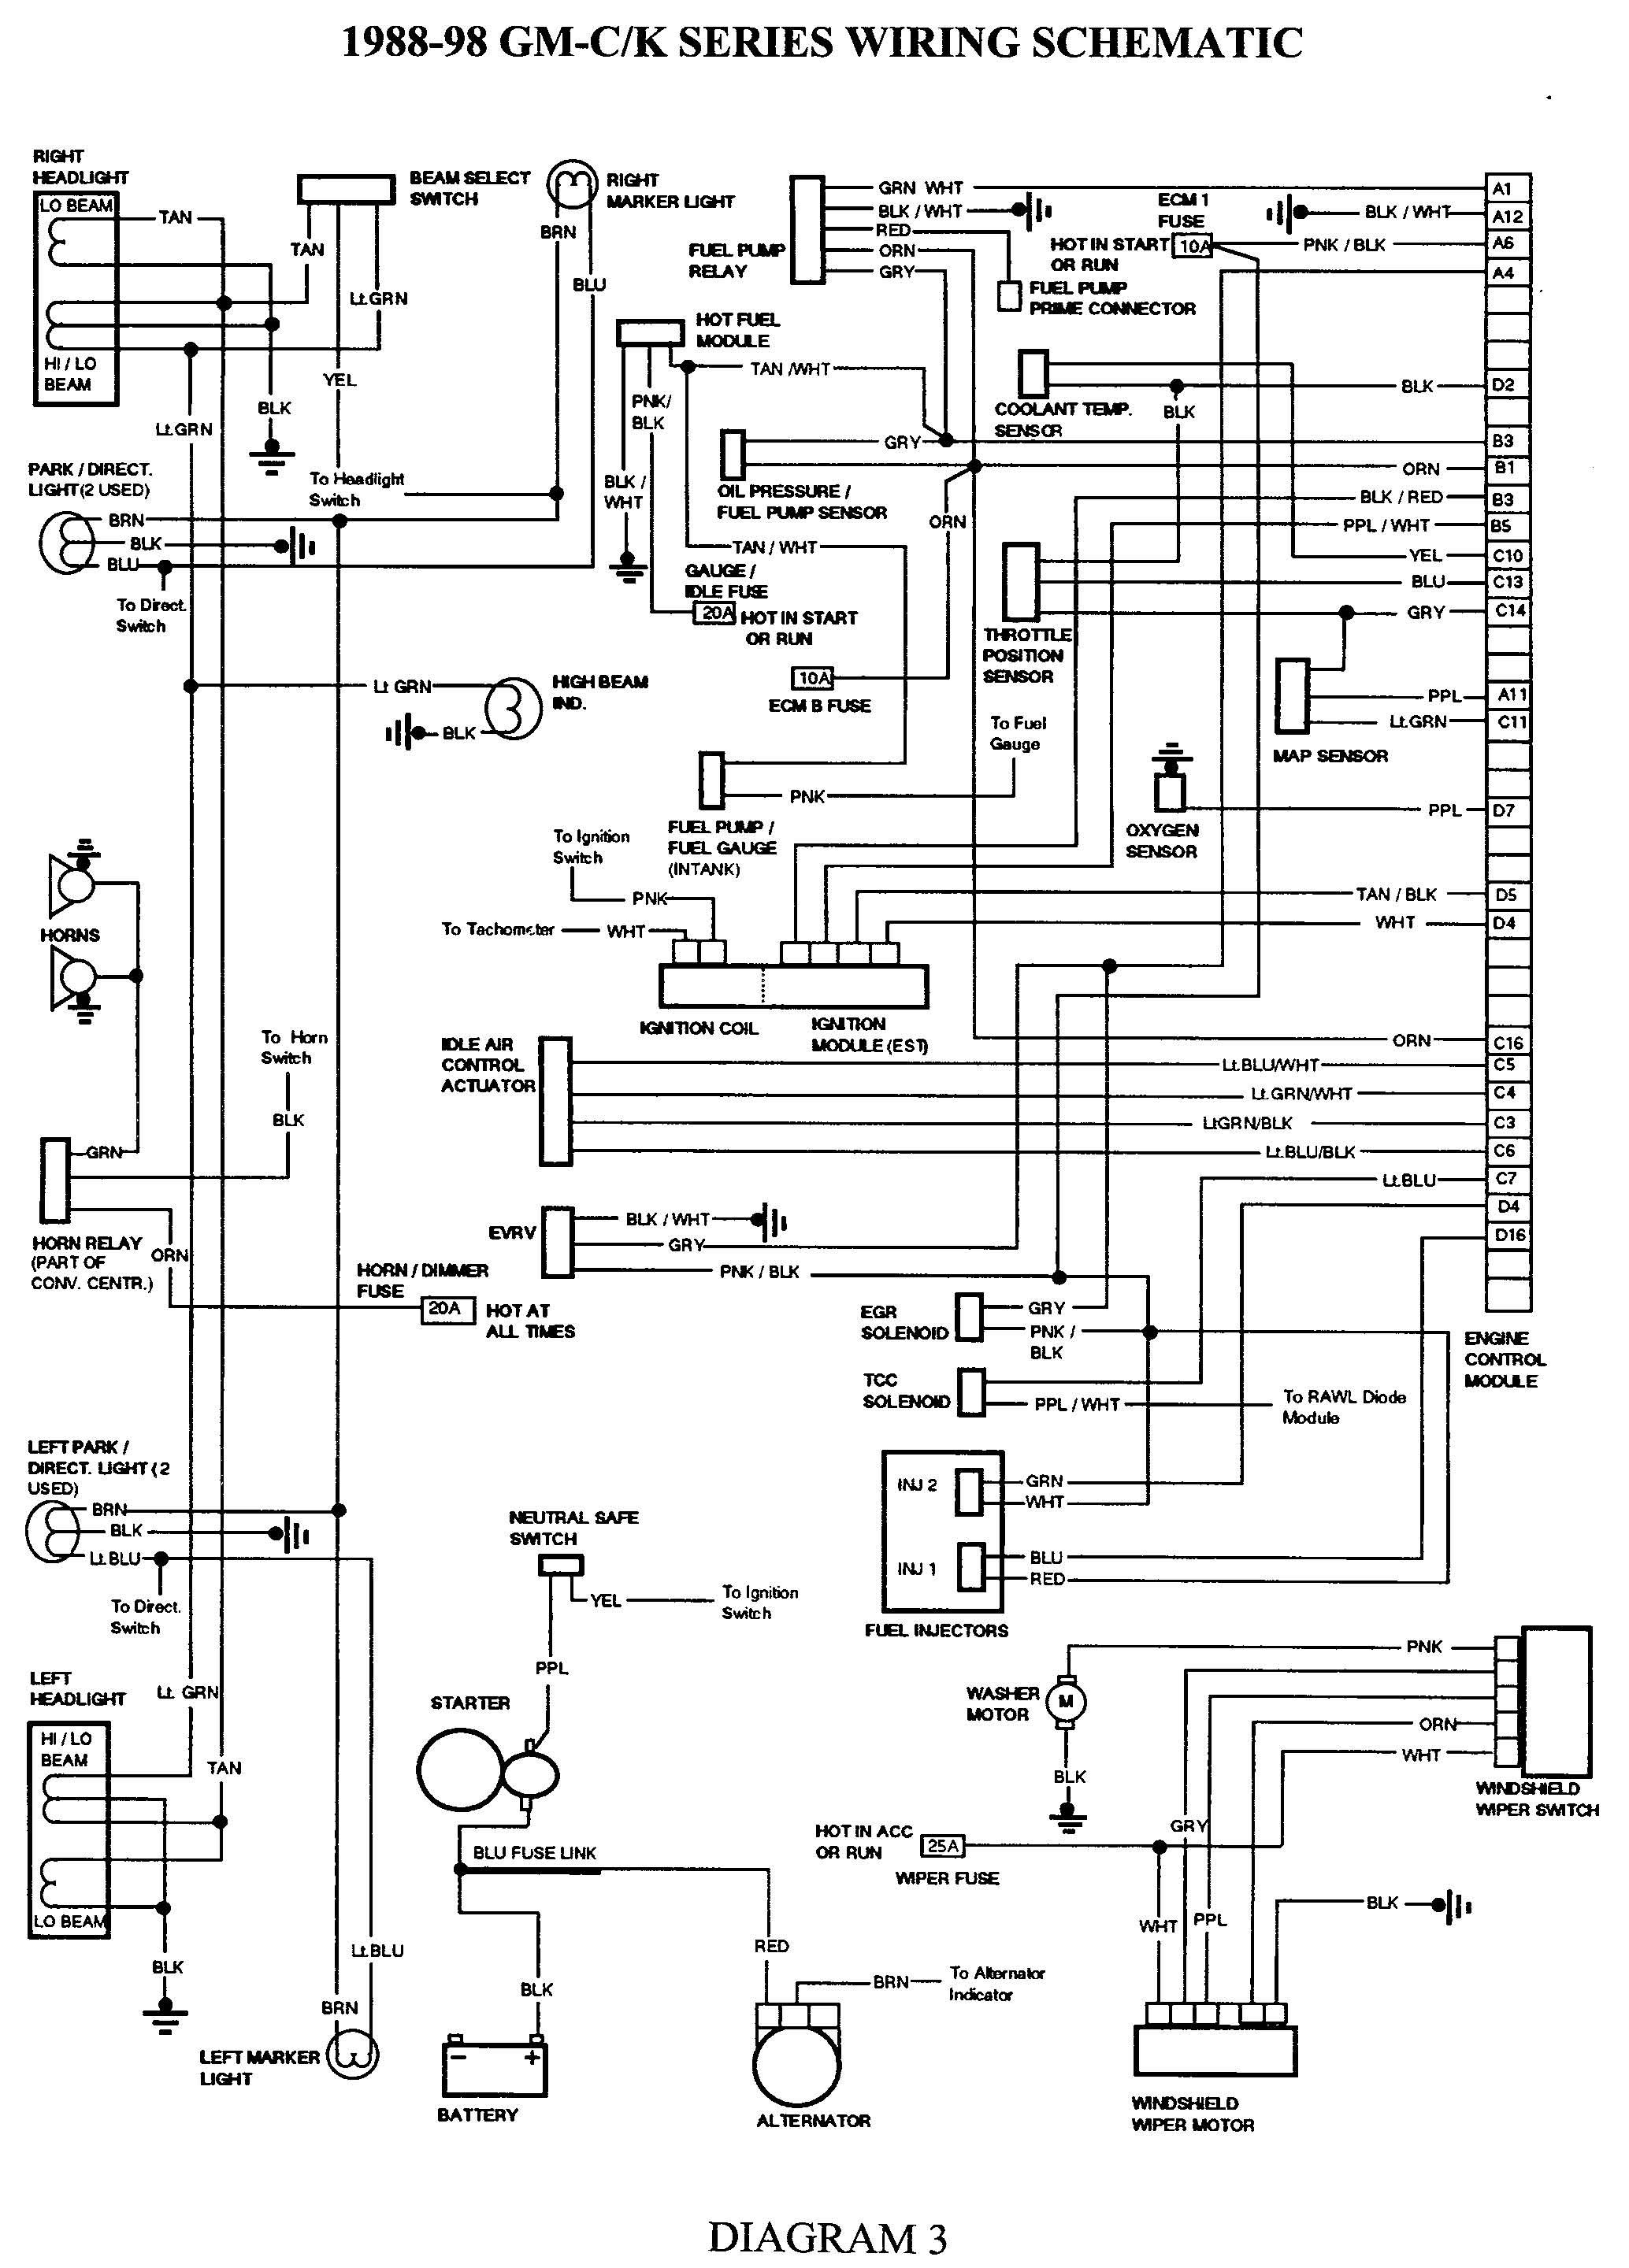 1996 gmc electric diagrams online circuit wiring diagram u2022 rh electrobuddha co uk